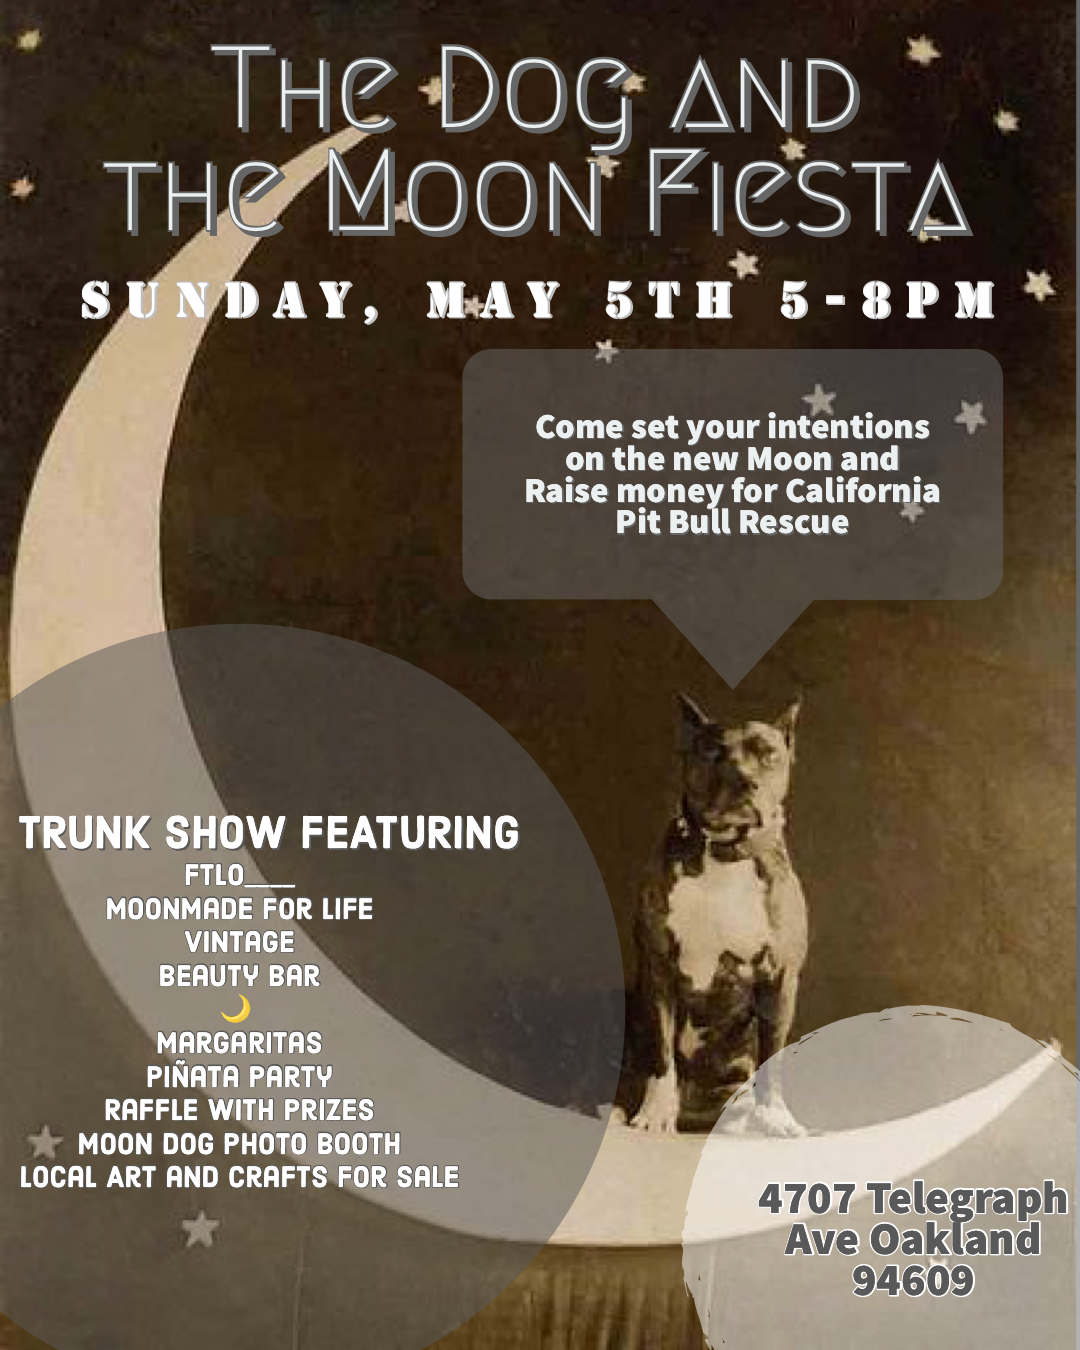 "THE DOG AND THE MOON FIESTA - MAY 5TH 5-8PM 2019SPONSORED BY MOON MADE FOR LIFE AND FTLO____OVER THE LAST FEW MONTH A GROUP OF US HAVE BEEN GATHERING TO CREATE WORKS OF ART THAT WE WILL BE DONATING AND SELLING AT THIS EVENT IN ORDER TO RAISE FUNDS FOR CALIFORNIA PIT BULL RESCUE. CALIFORNIA PIT BULL RESCUE (CPR) IS ORGANIZED FOR THE PURPOSE OF RESCUING AT RISK ""PIT BULL"" TYPE DOGS AND FACILITATING SOCIAL CHANGE TO ABOLISH THE ABUSE, OVER BREEDING AND MIS-EDUCATION SURROUNDING THE BREED.THERE WILL BE ARTS AND CRAFT SALES, BEAUTY BAR, PHOTO BOOTH, VINTAGE RACK, RAFFLE WITH PRIZES, PINATA AND TRUNK SHOW FEATURING BRANDS FTLO___AND MOON MADE FOR LIFE, NOT TO MENTION MARGARITAS! COME SET YOUR INTENTIONS ON THE NEW MOON AND HELP CPR ""SAVE LIVES, ONE PAW AT A TIME!"""